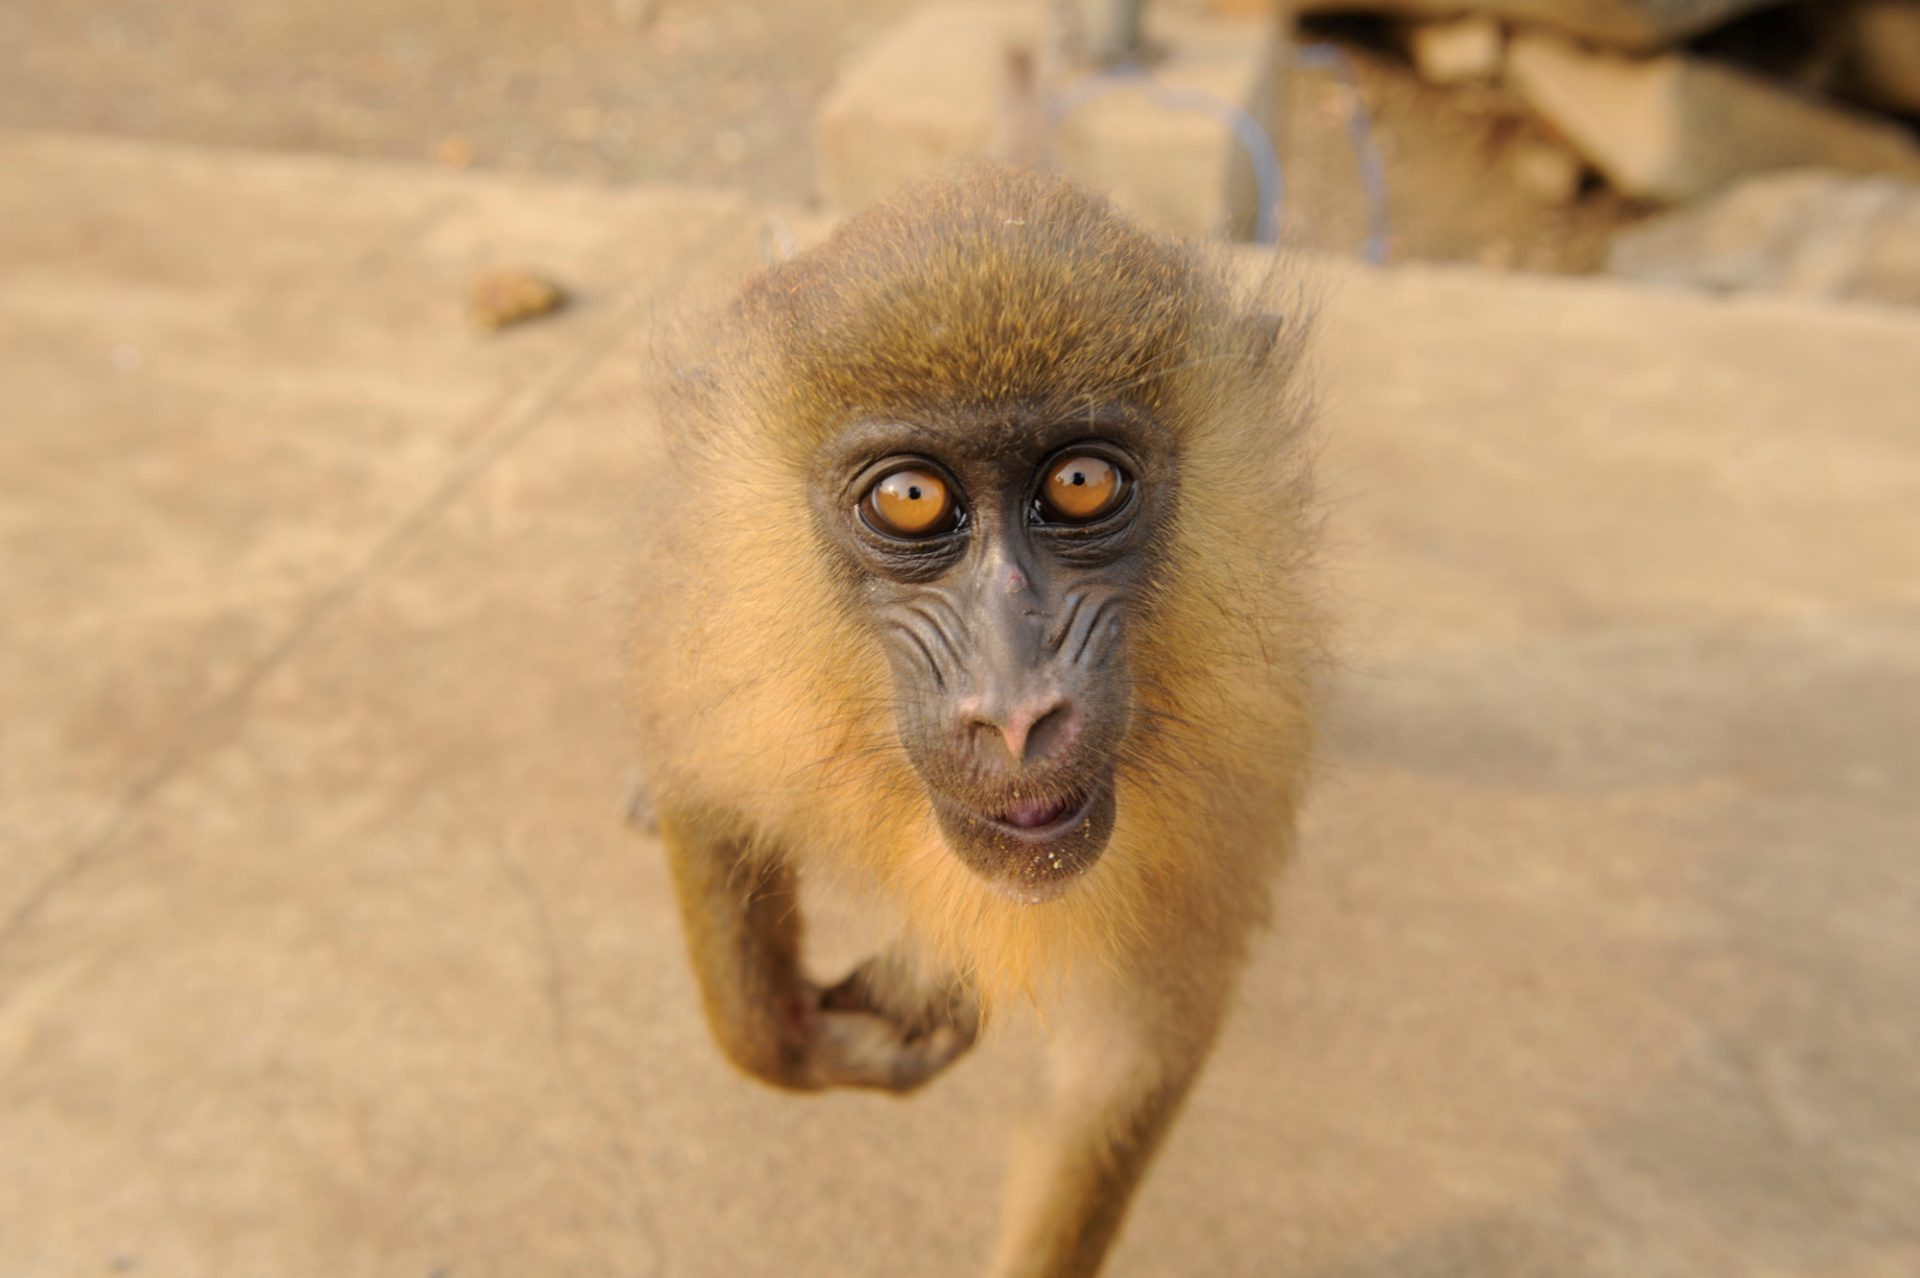 A captive, five-month-old mandrill (Mandrillus sphinx) in Malabo, Equatorial Guinea. (IUCN: Vulnerable)